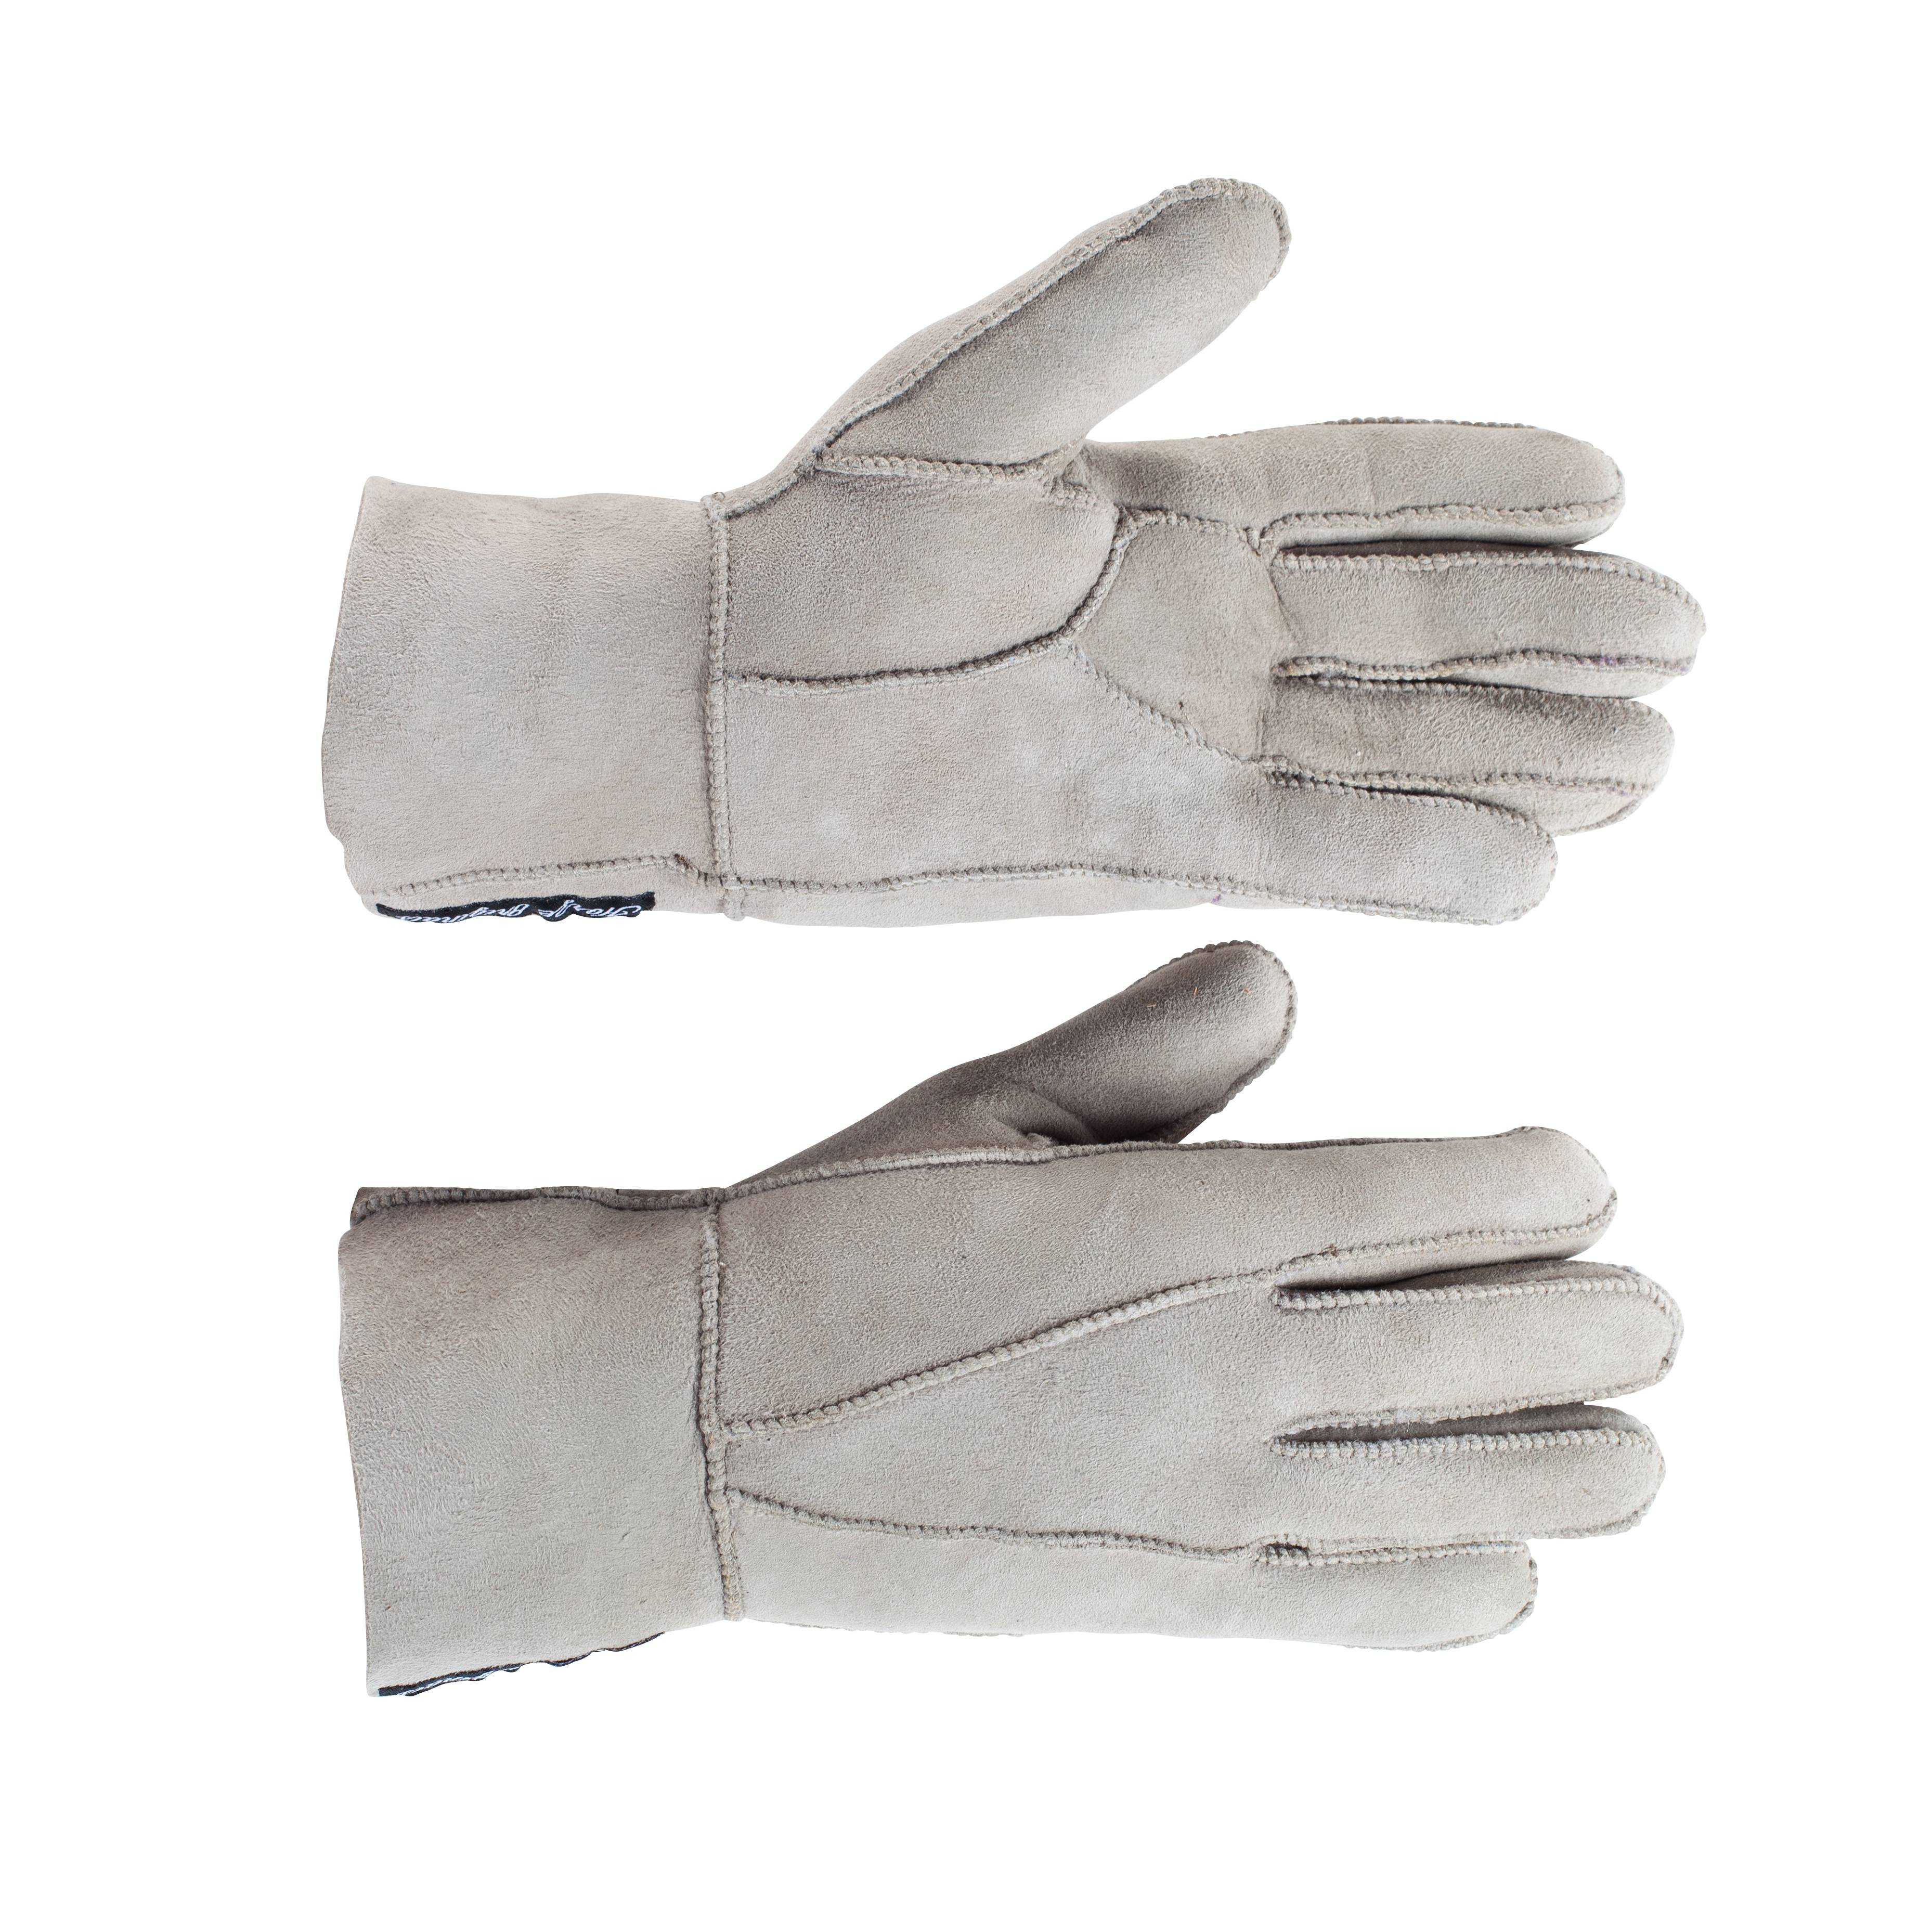 Horze Lana Sheepskin Winter Gloves - Ladies